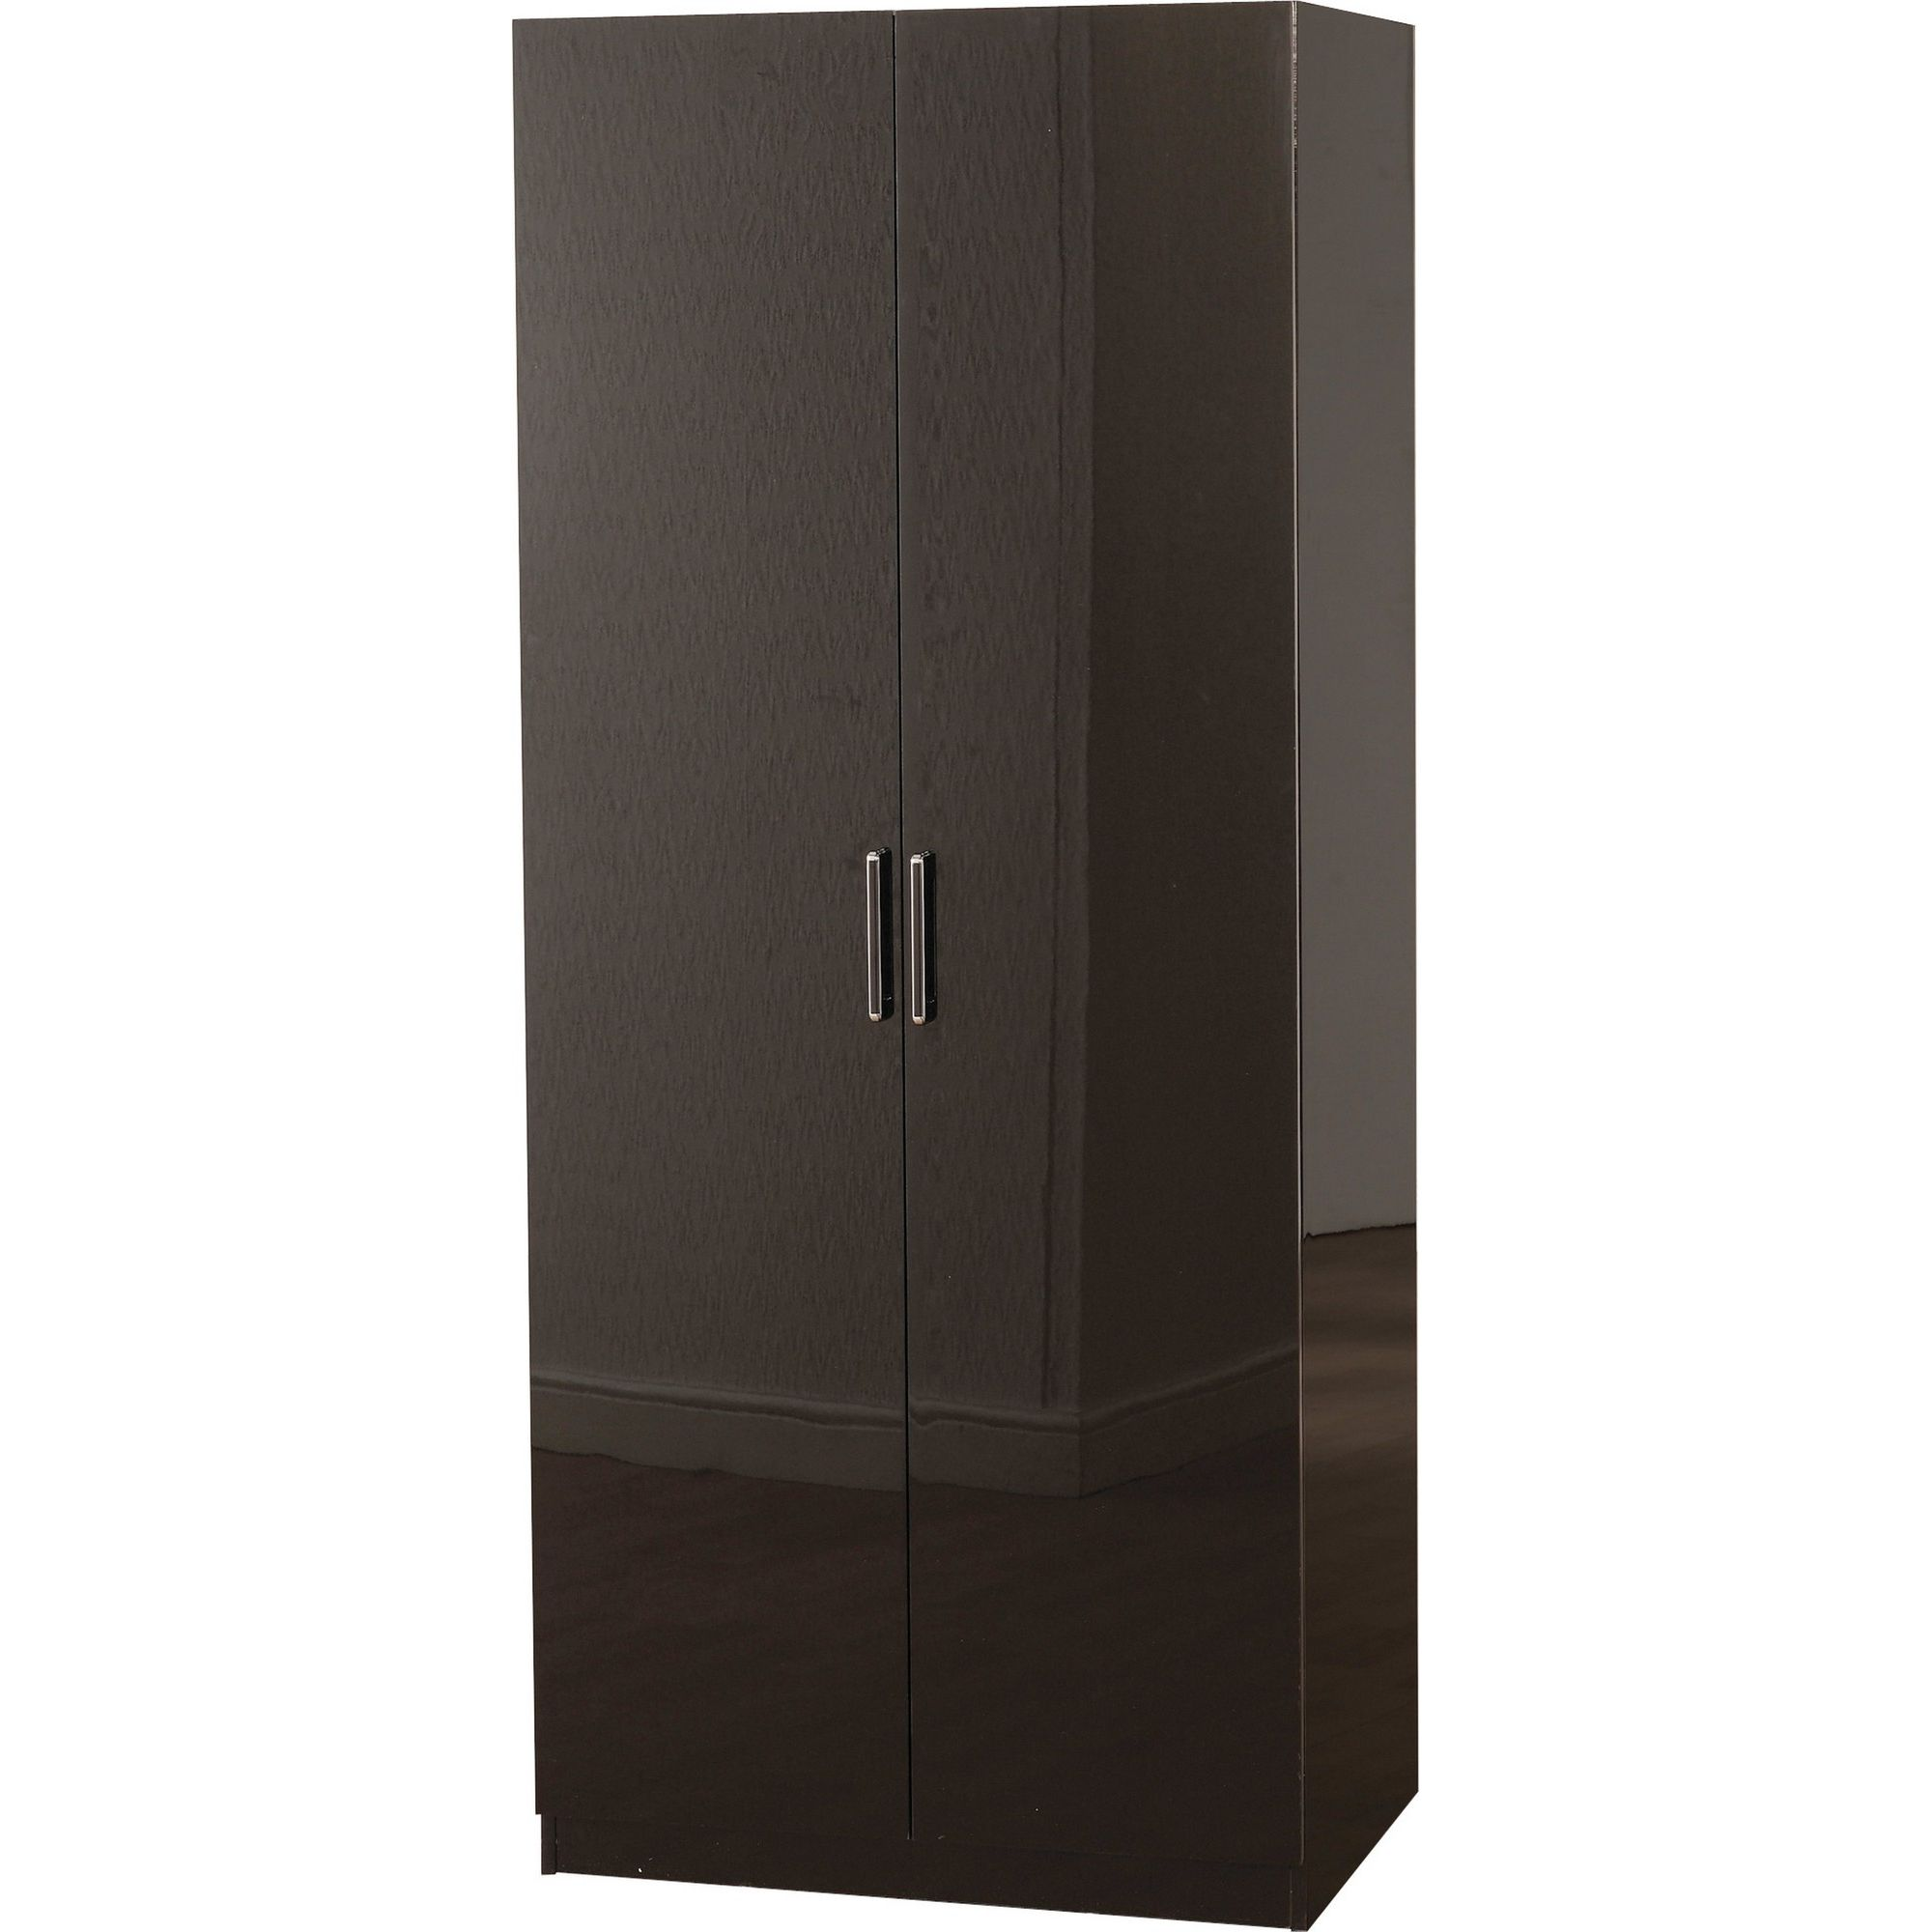 Home Essence Boston Two Door Wardrobe - Black Gloss at Tesco Direct